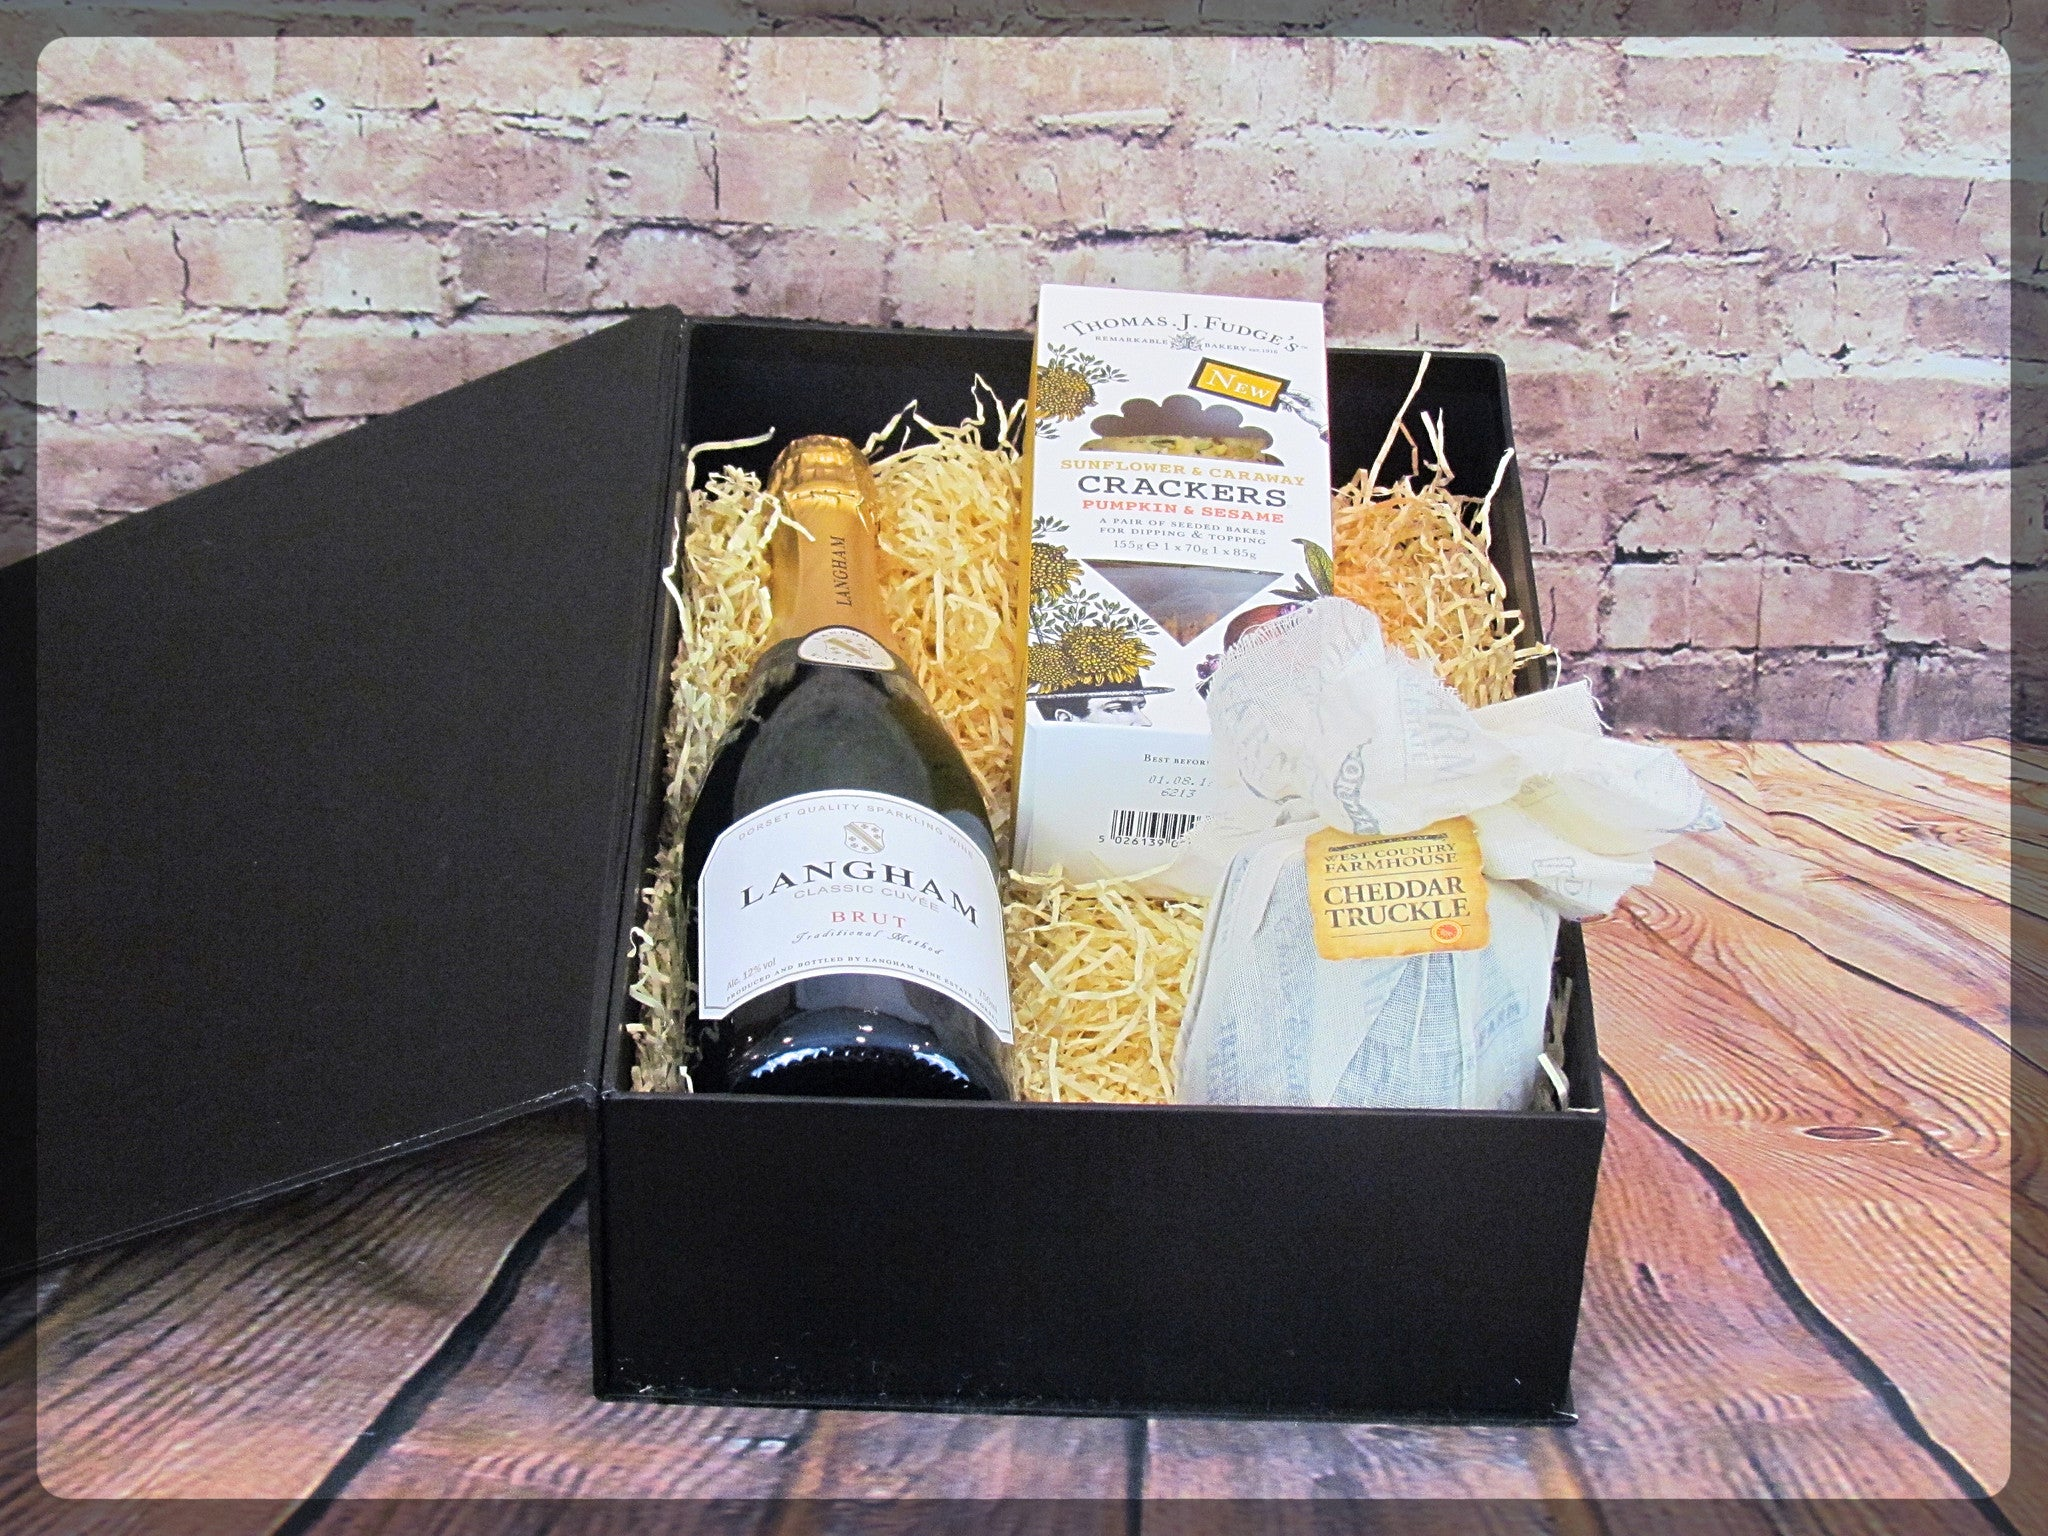 Dorset Sparkle - Corporate Hampers - Cherry Picked Hampers - 100% Dorset